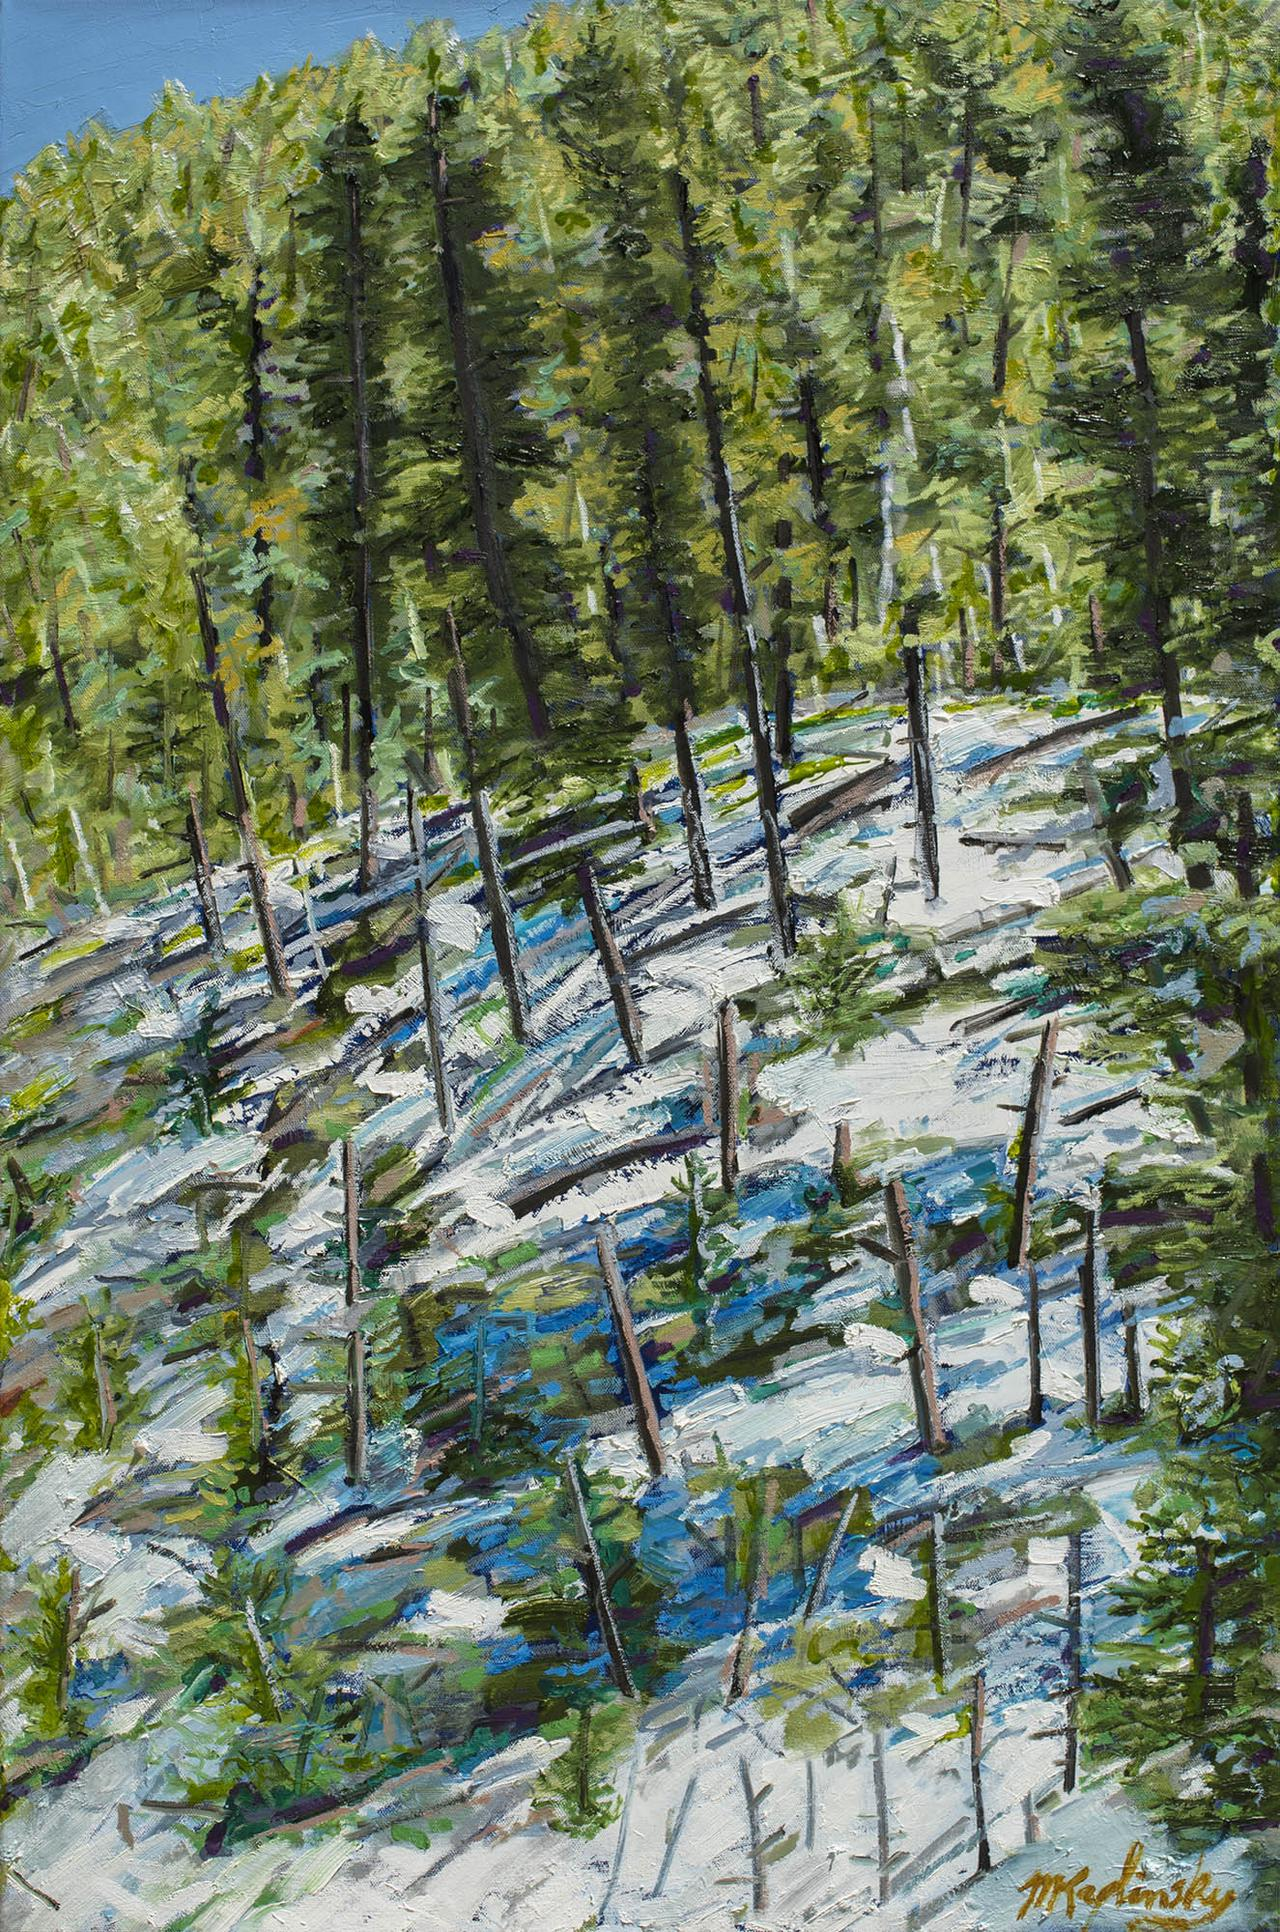 portfolio/Morning in the Ski Valley - 24x36 oil on canvas by Matt Kaplinsky.jpg